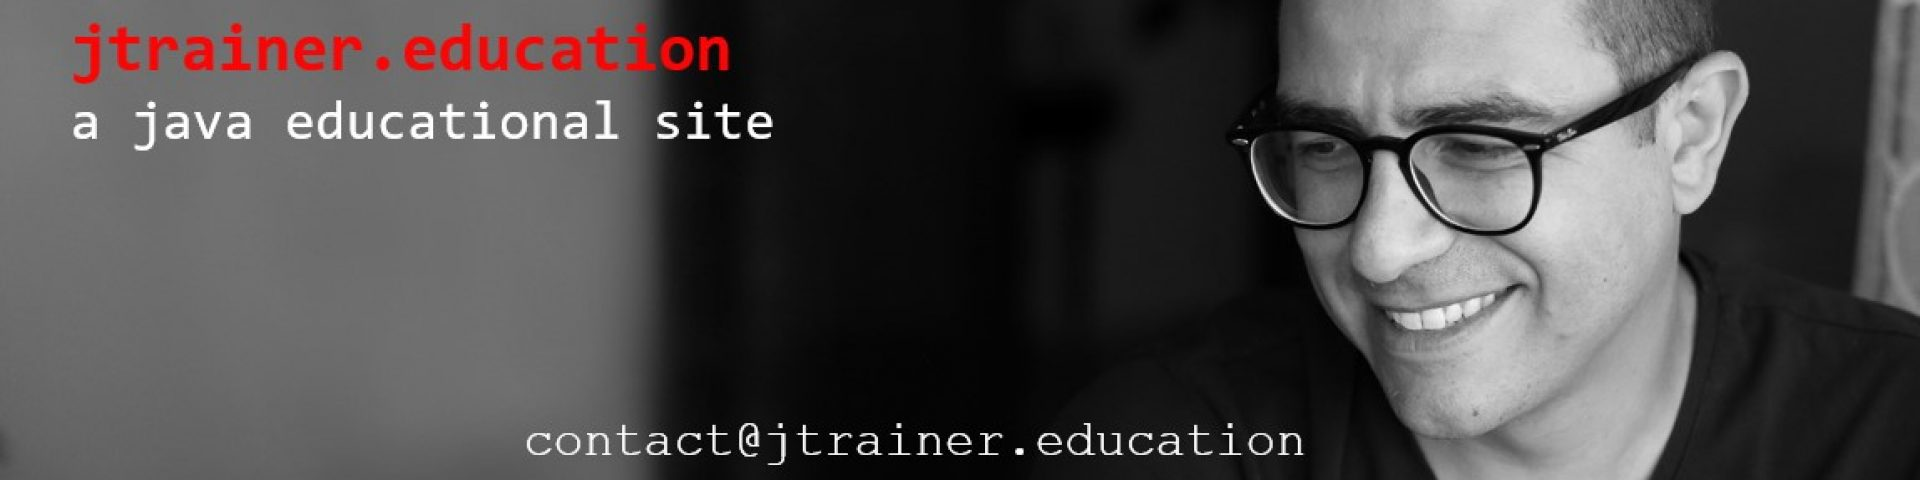 Jtrainer.education